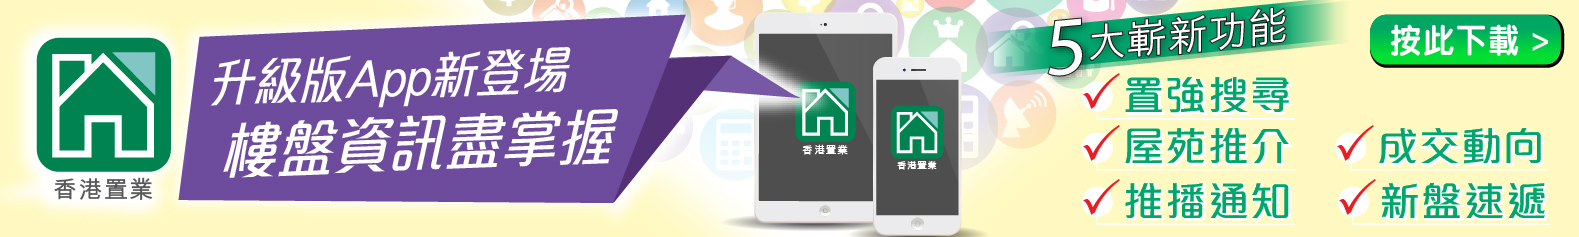 经络按揭转介 mReferral Mortgage Brokerage Services